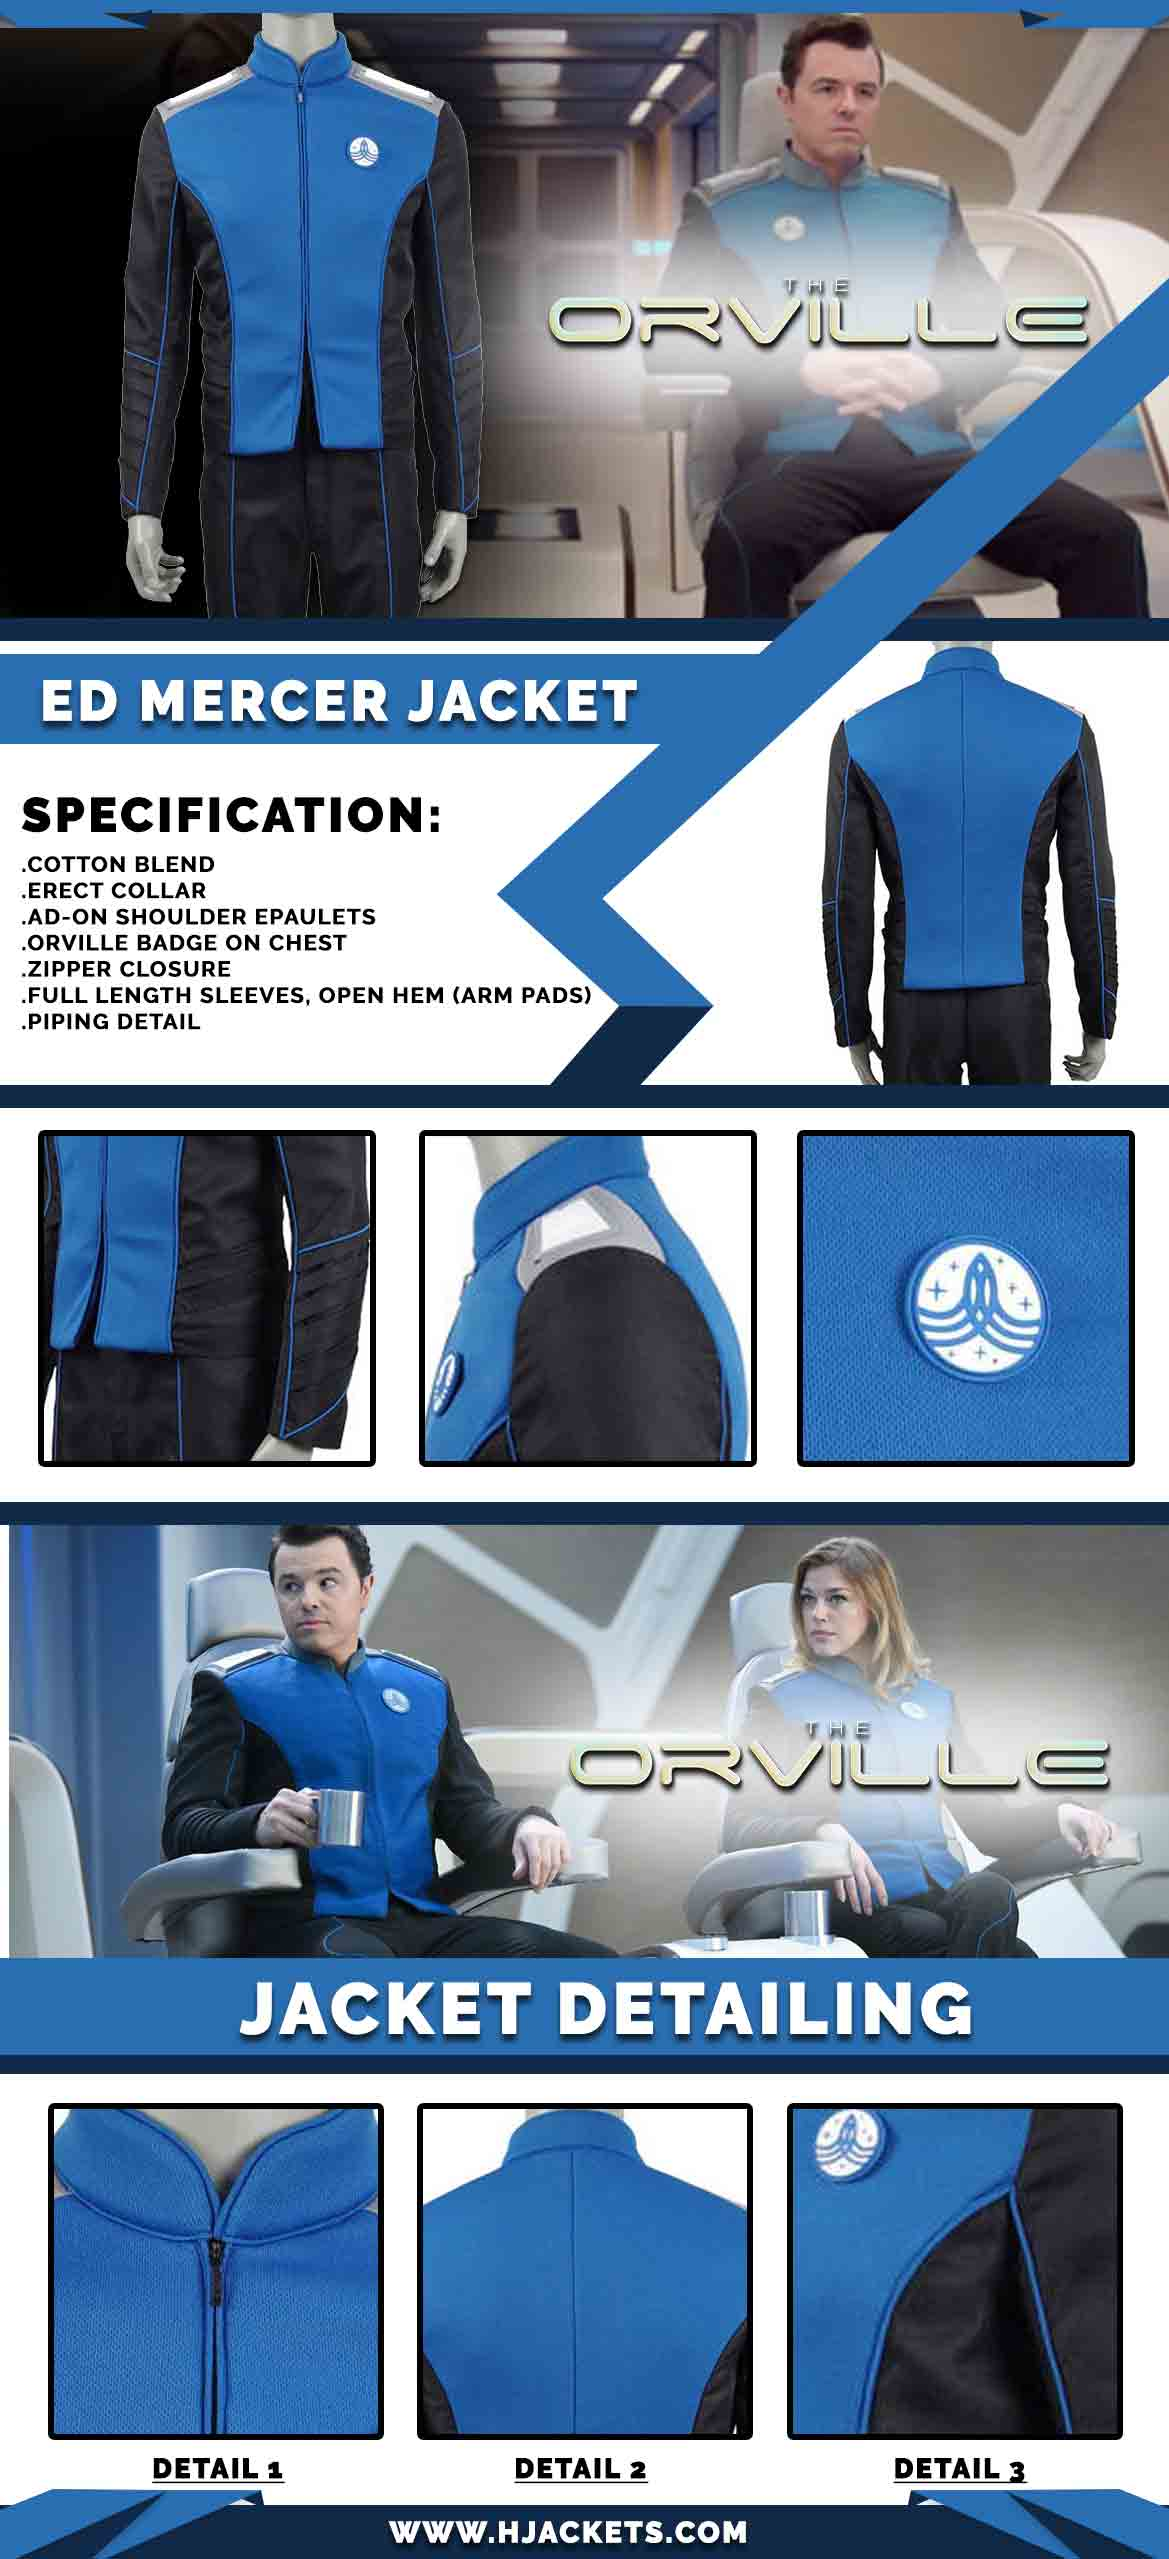 ed mercer Jacket Infographic